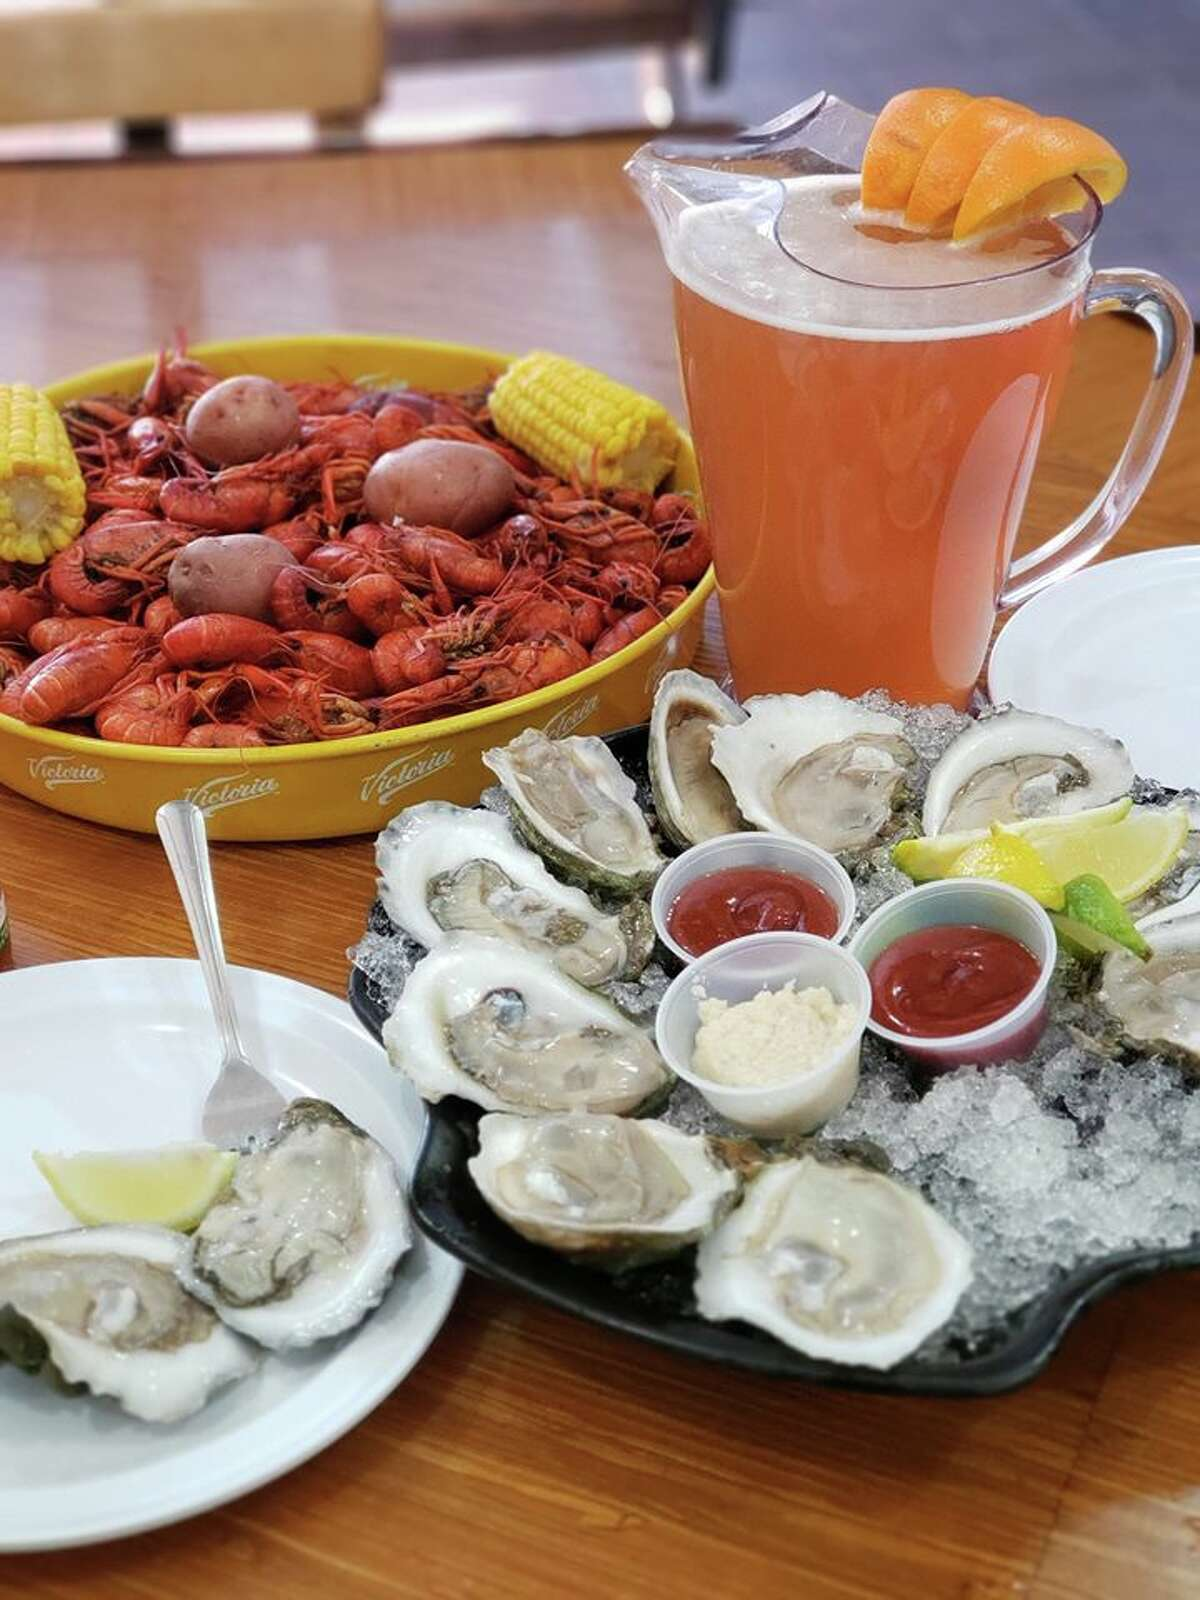 Dry Dock Oyster Bar is offering a dozen oysters, three pounds of crawfish and a pitcher of beer for $54 to celebrate the Super Bowl. The offer is valid all day Sunday.